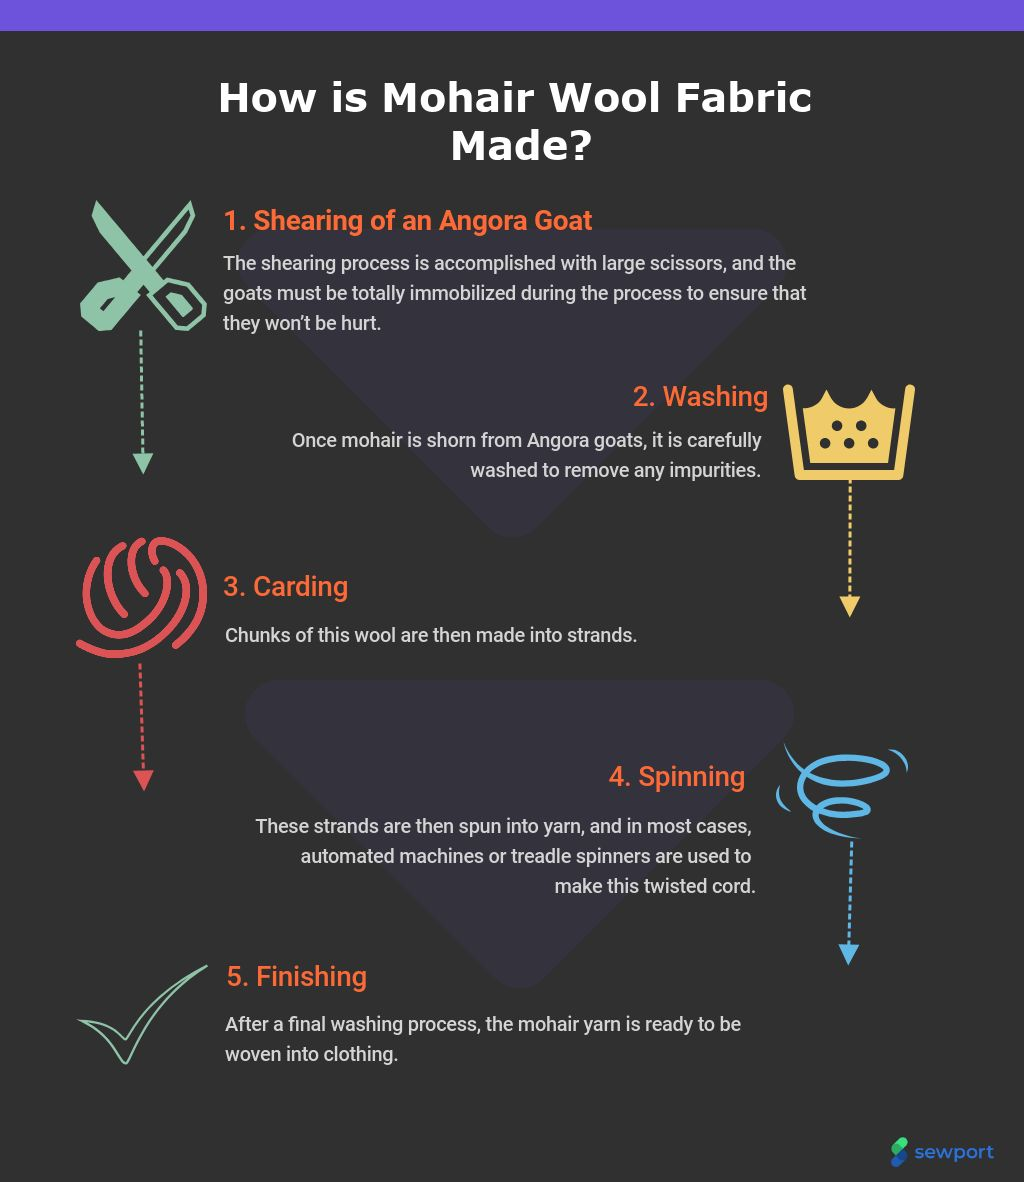 how is mohair wool fabric made